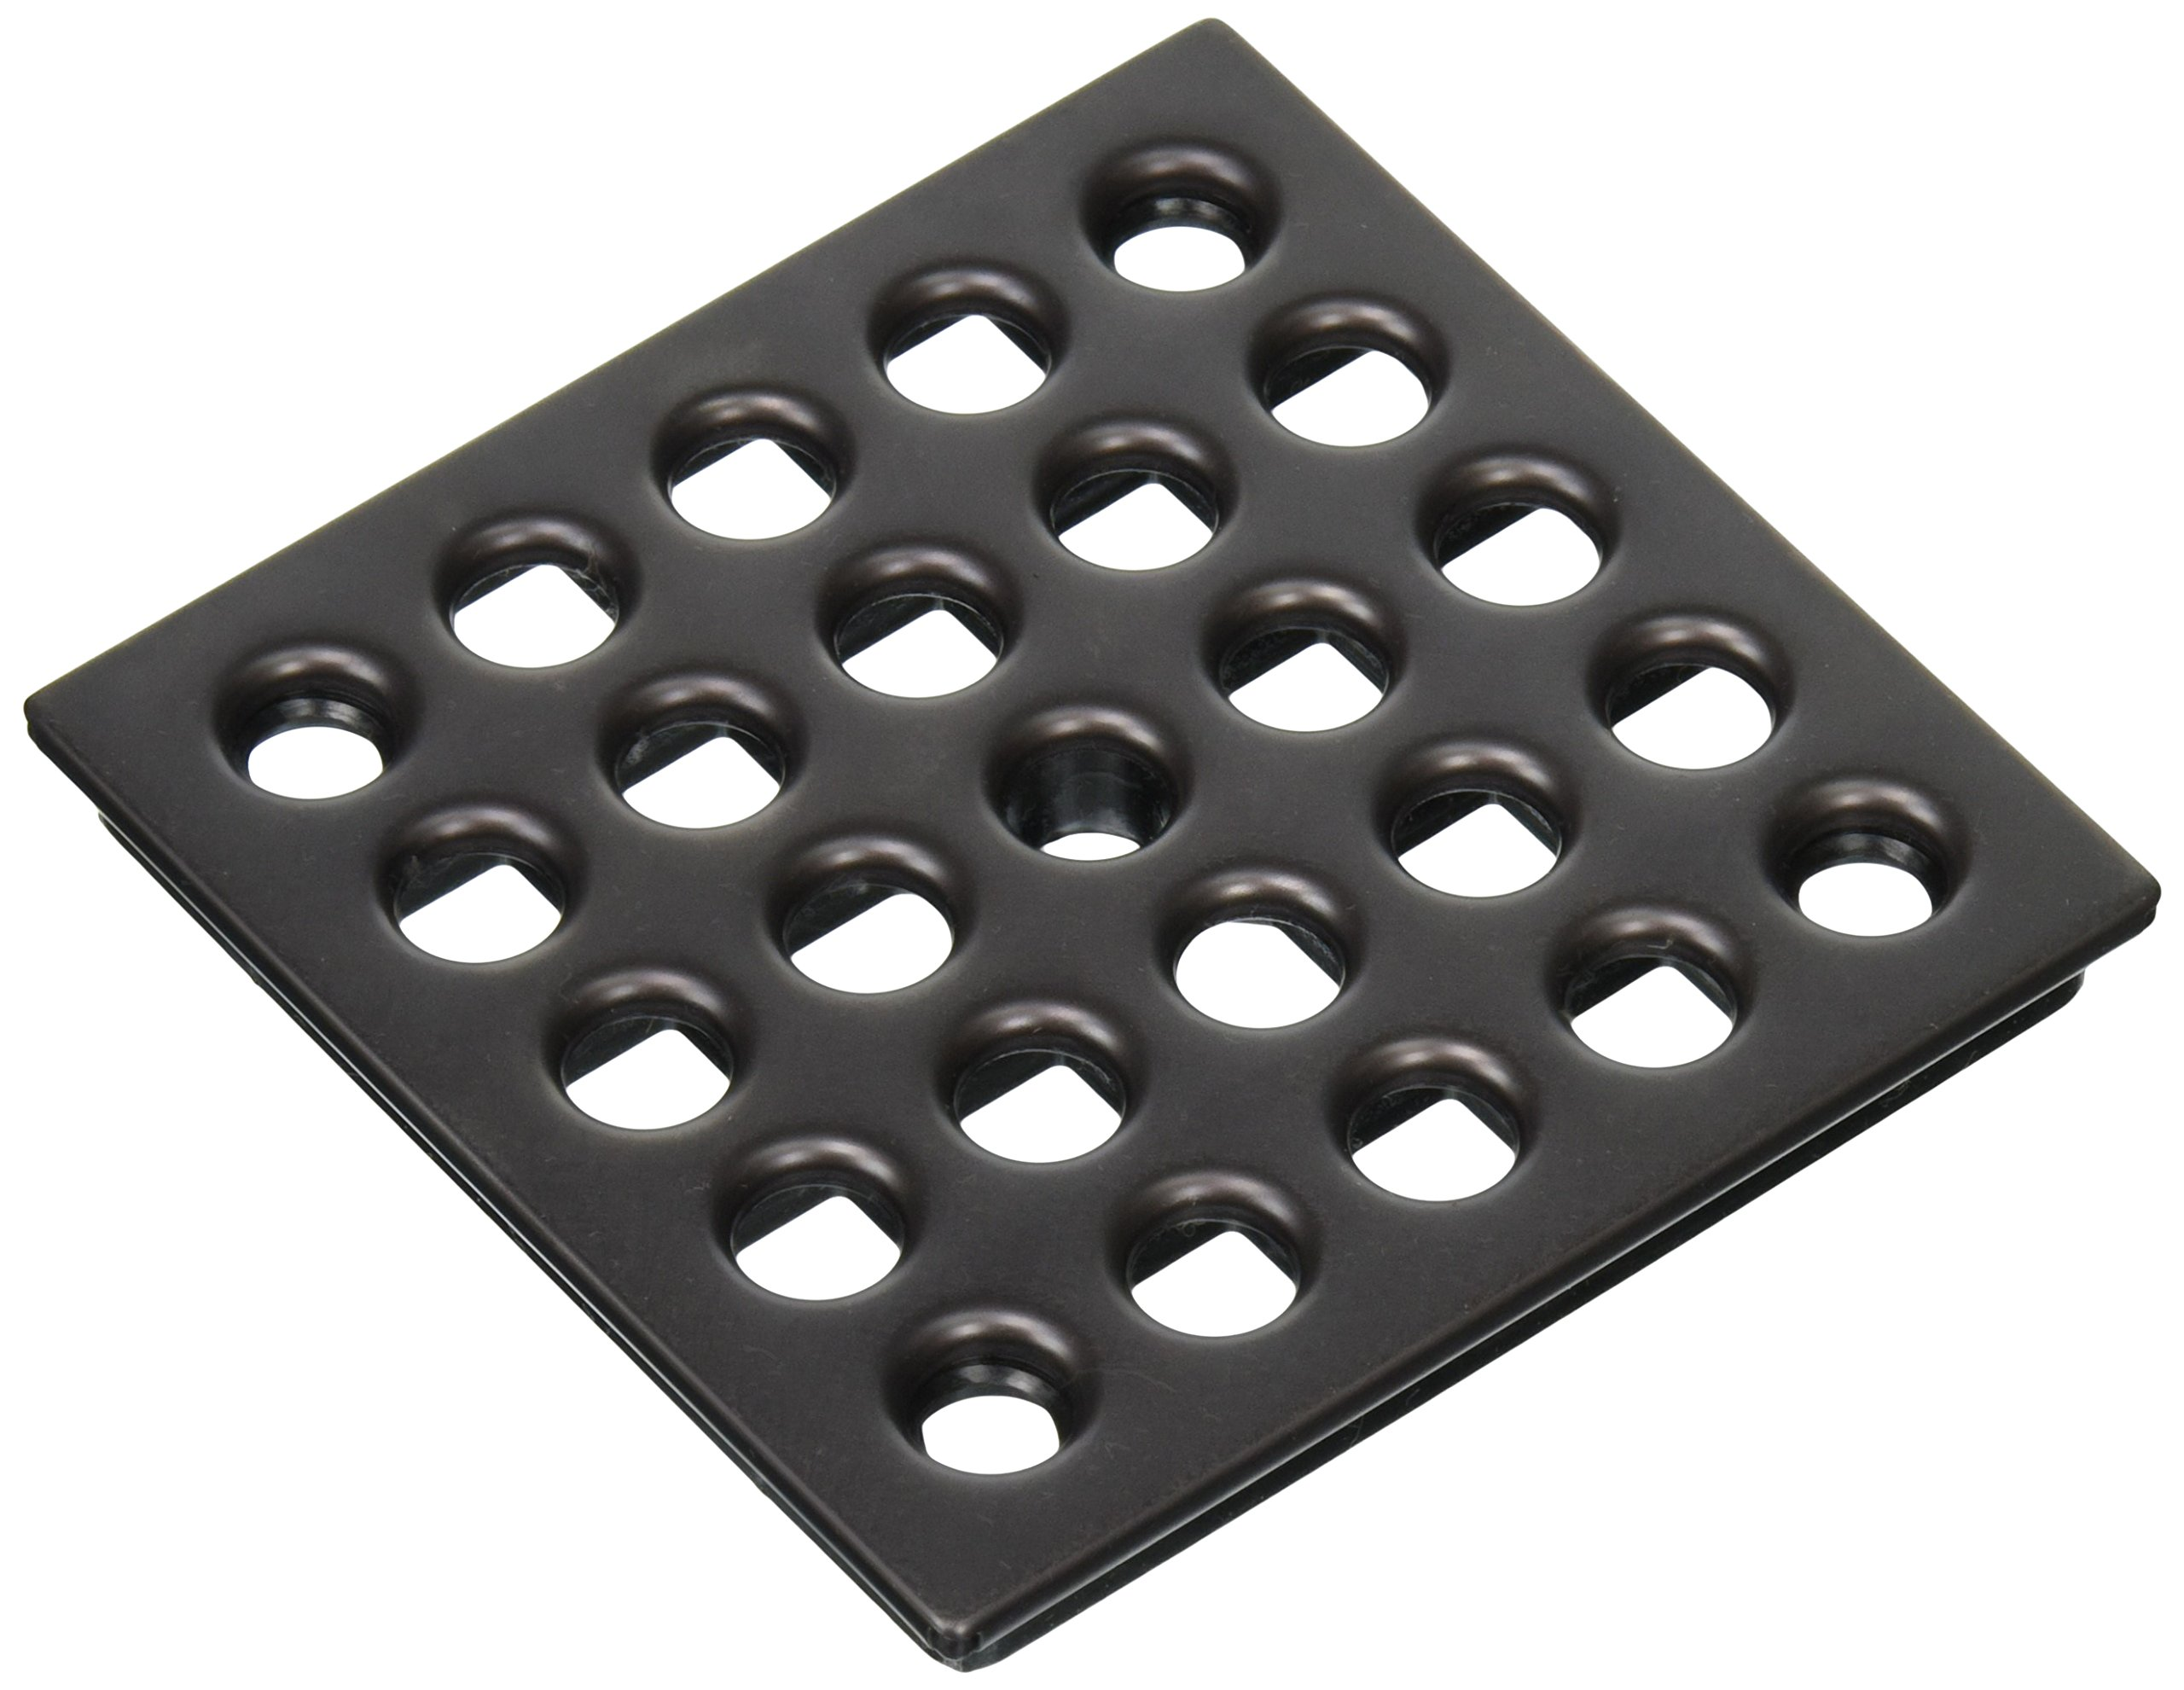 Ebbe E4407 Square Shower Drain Grate, Oil Rubbed Bronze